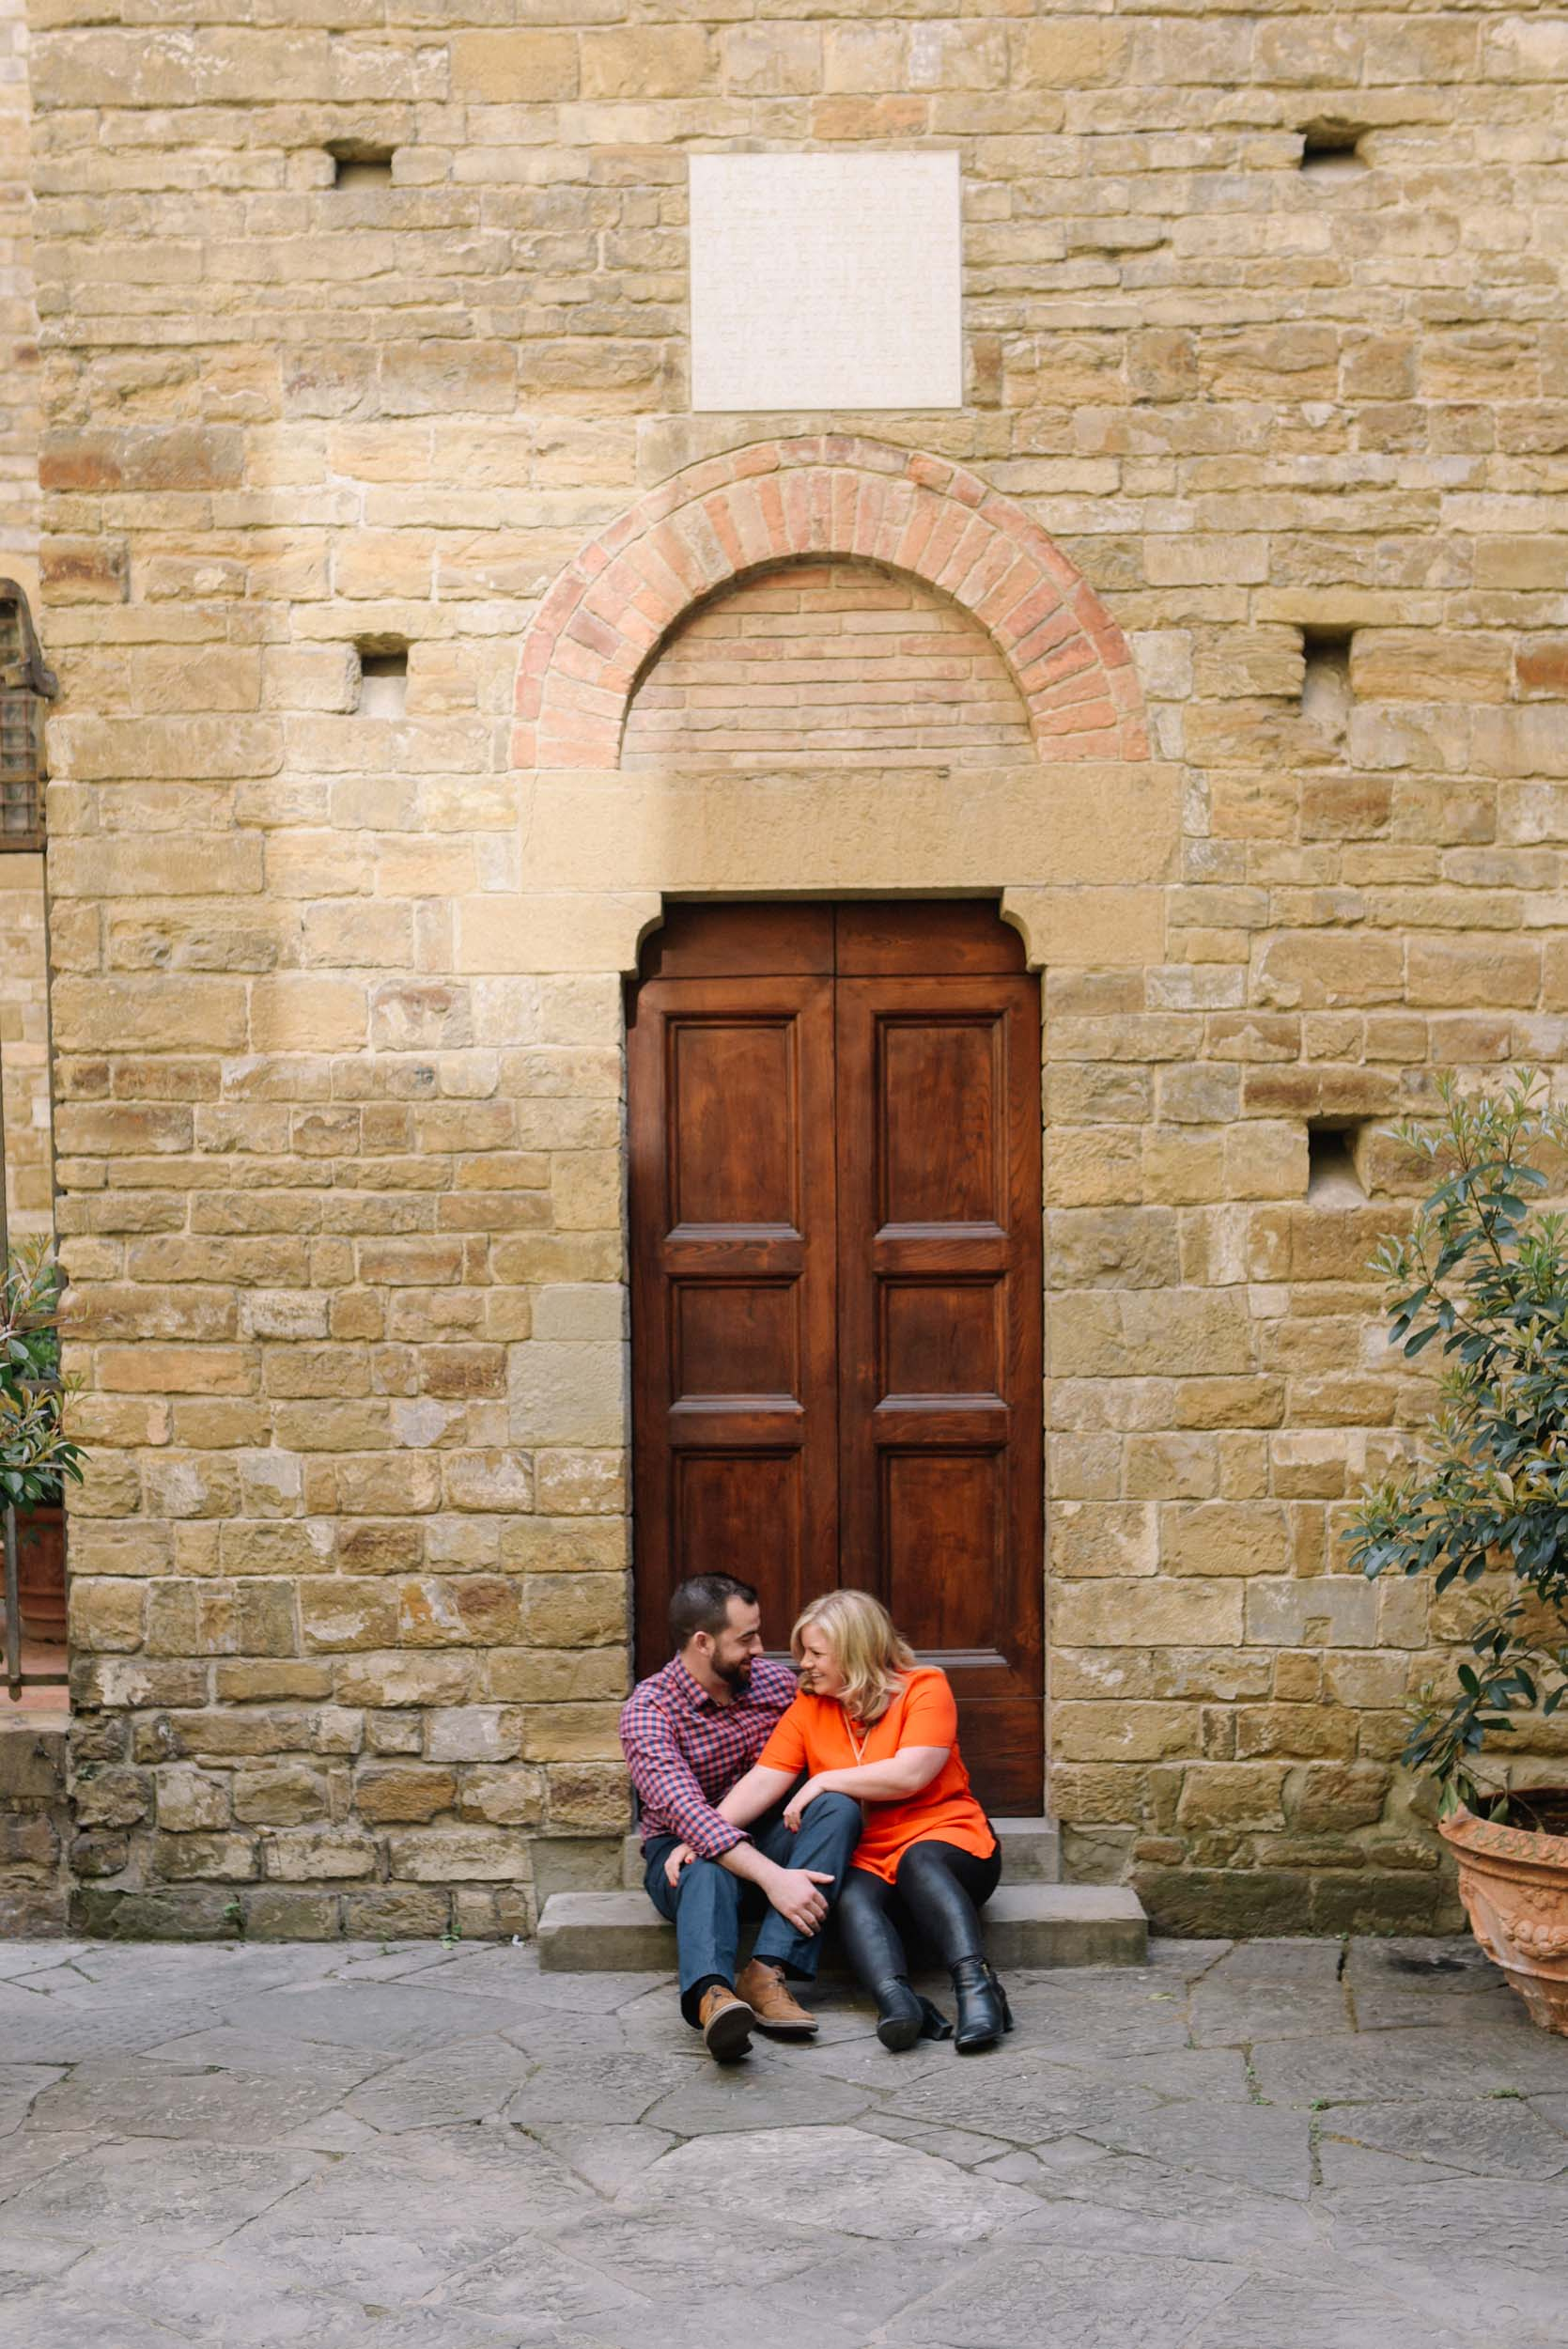 Couple sitting together on steps in small alley in Florence, Italy